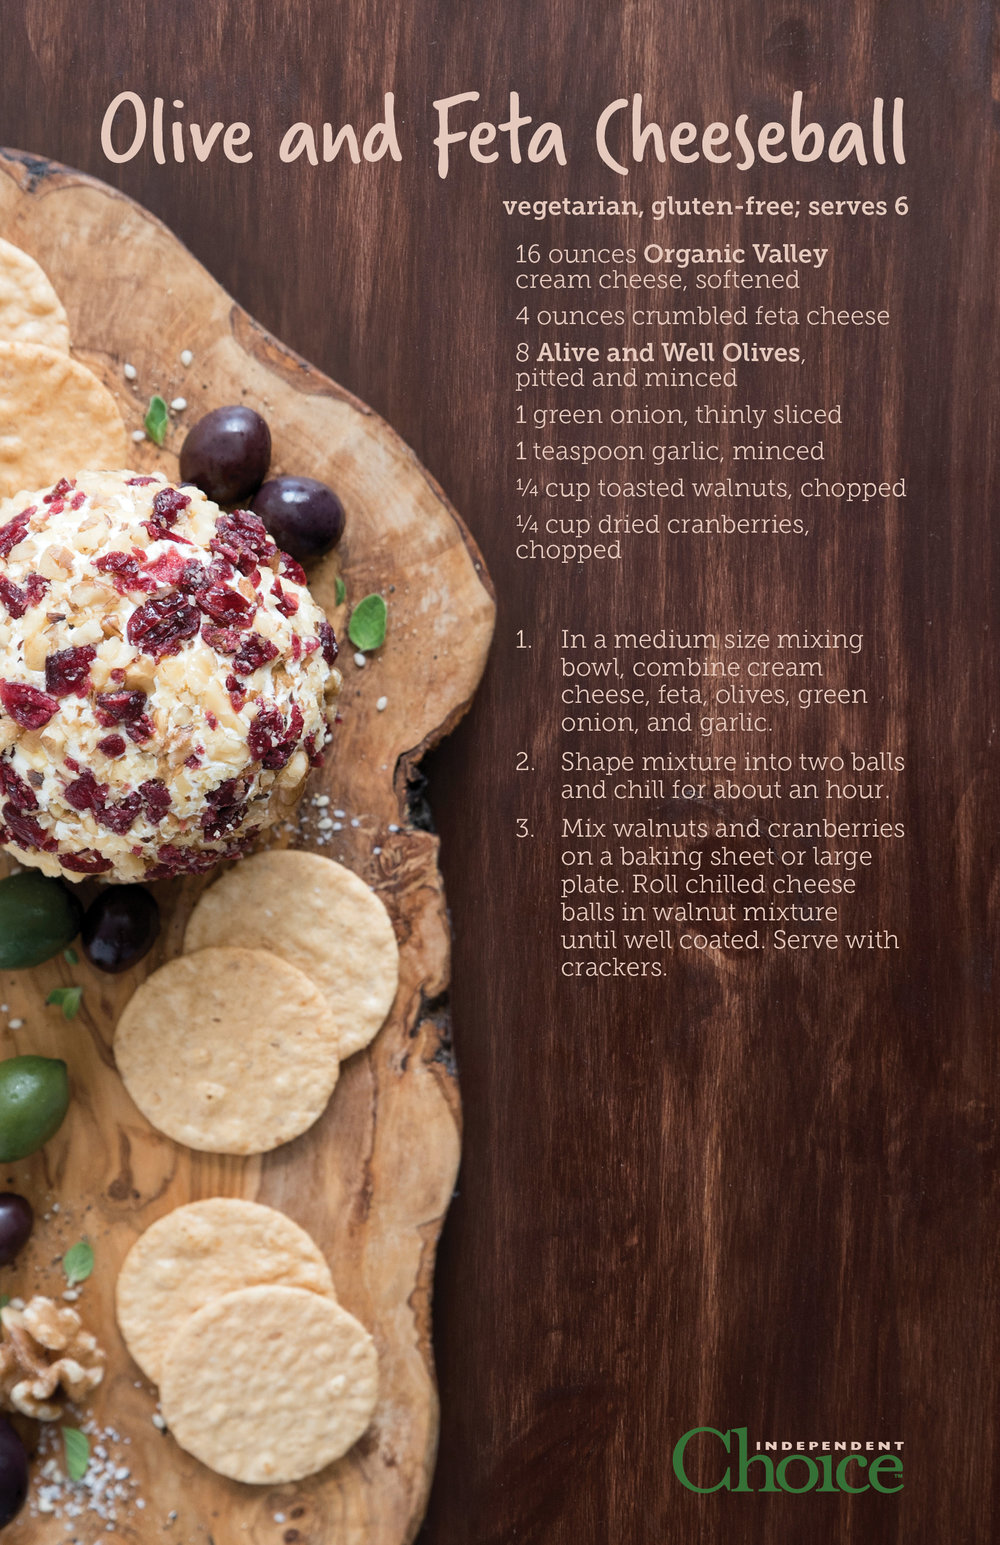 2017 Holiday Olive and Feta Cheeseball.jpg